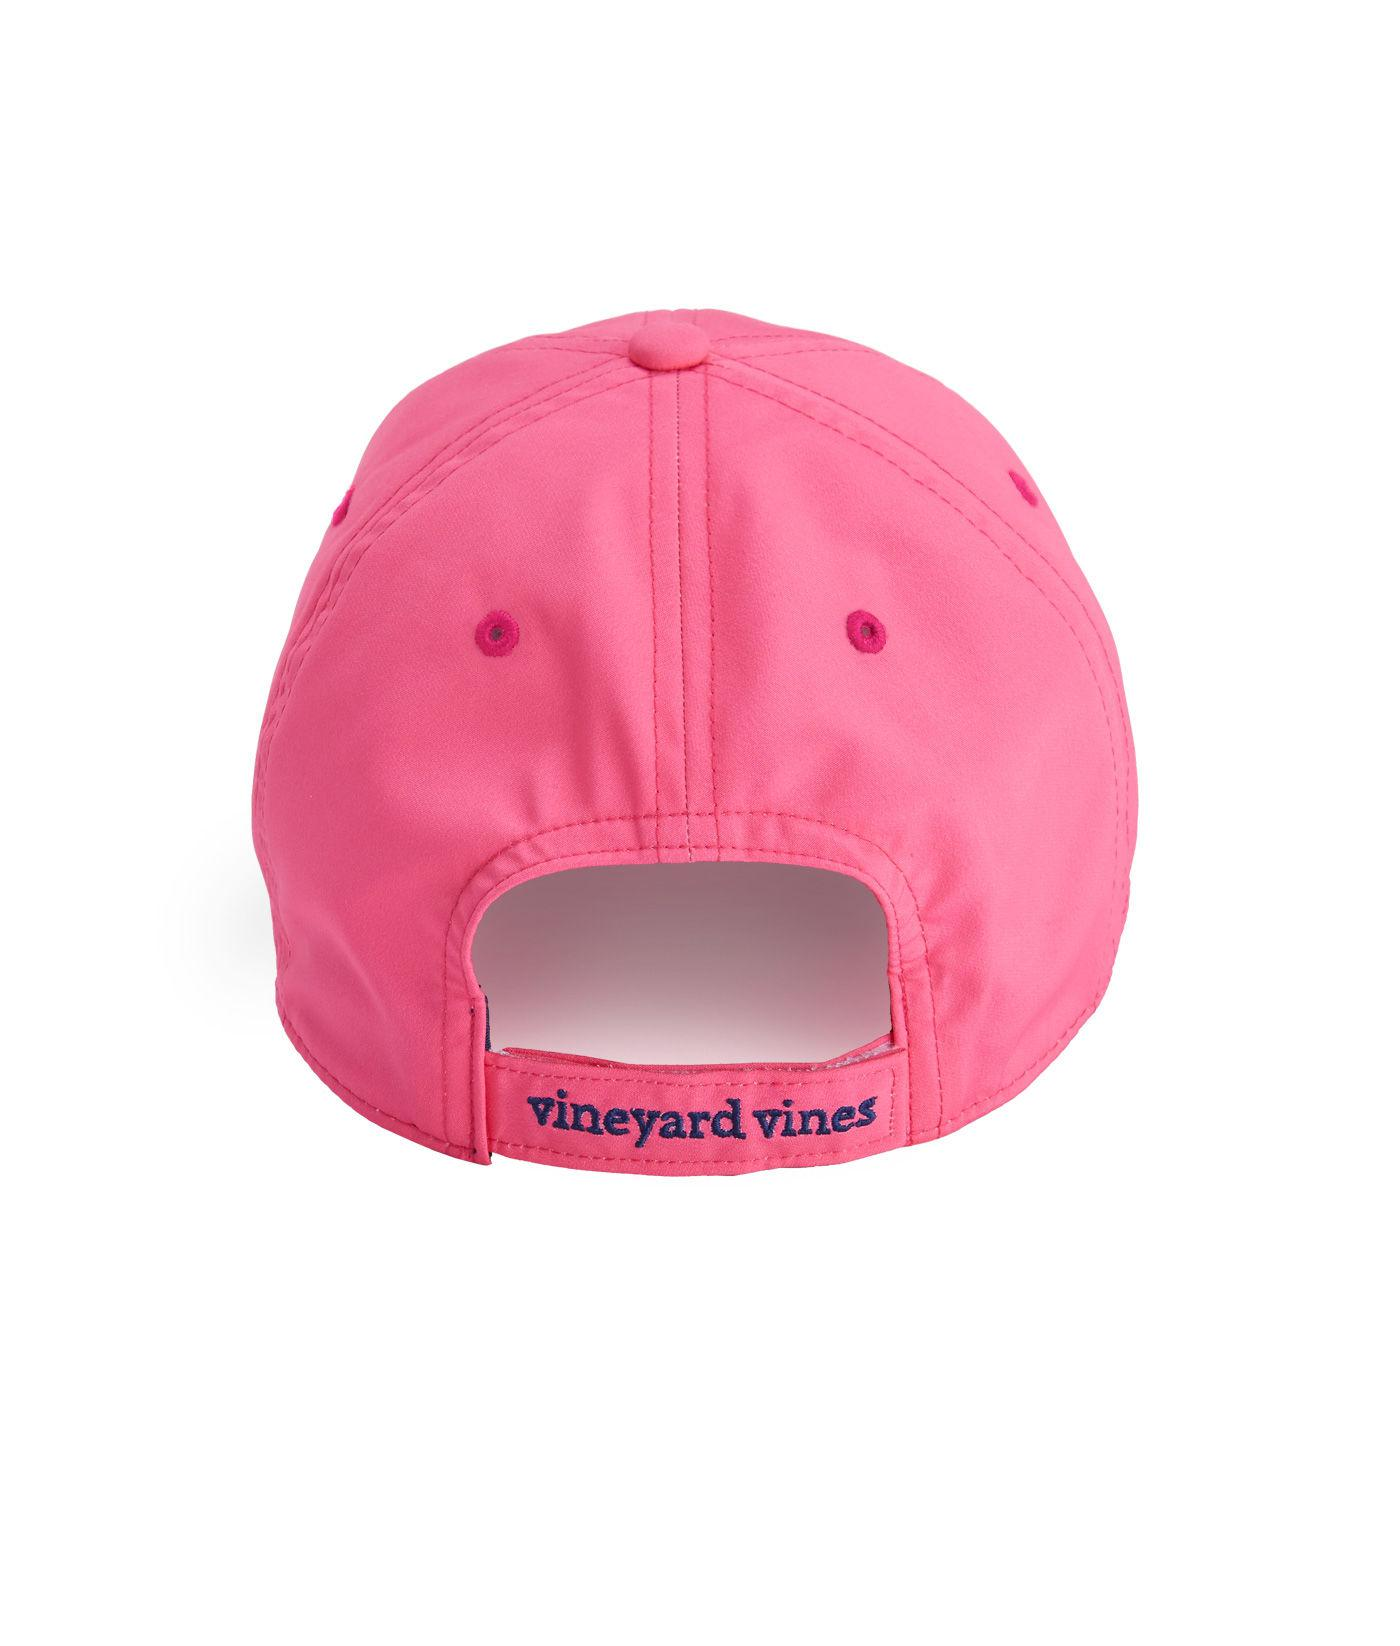 b6c903136b6 Lyst - Vineyard Vines Performance Logo Baseball Hat in Pink - Save  8.333333333333329%